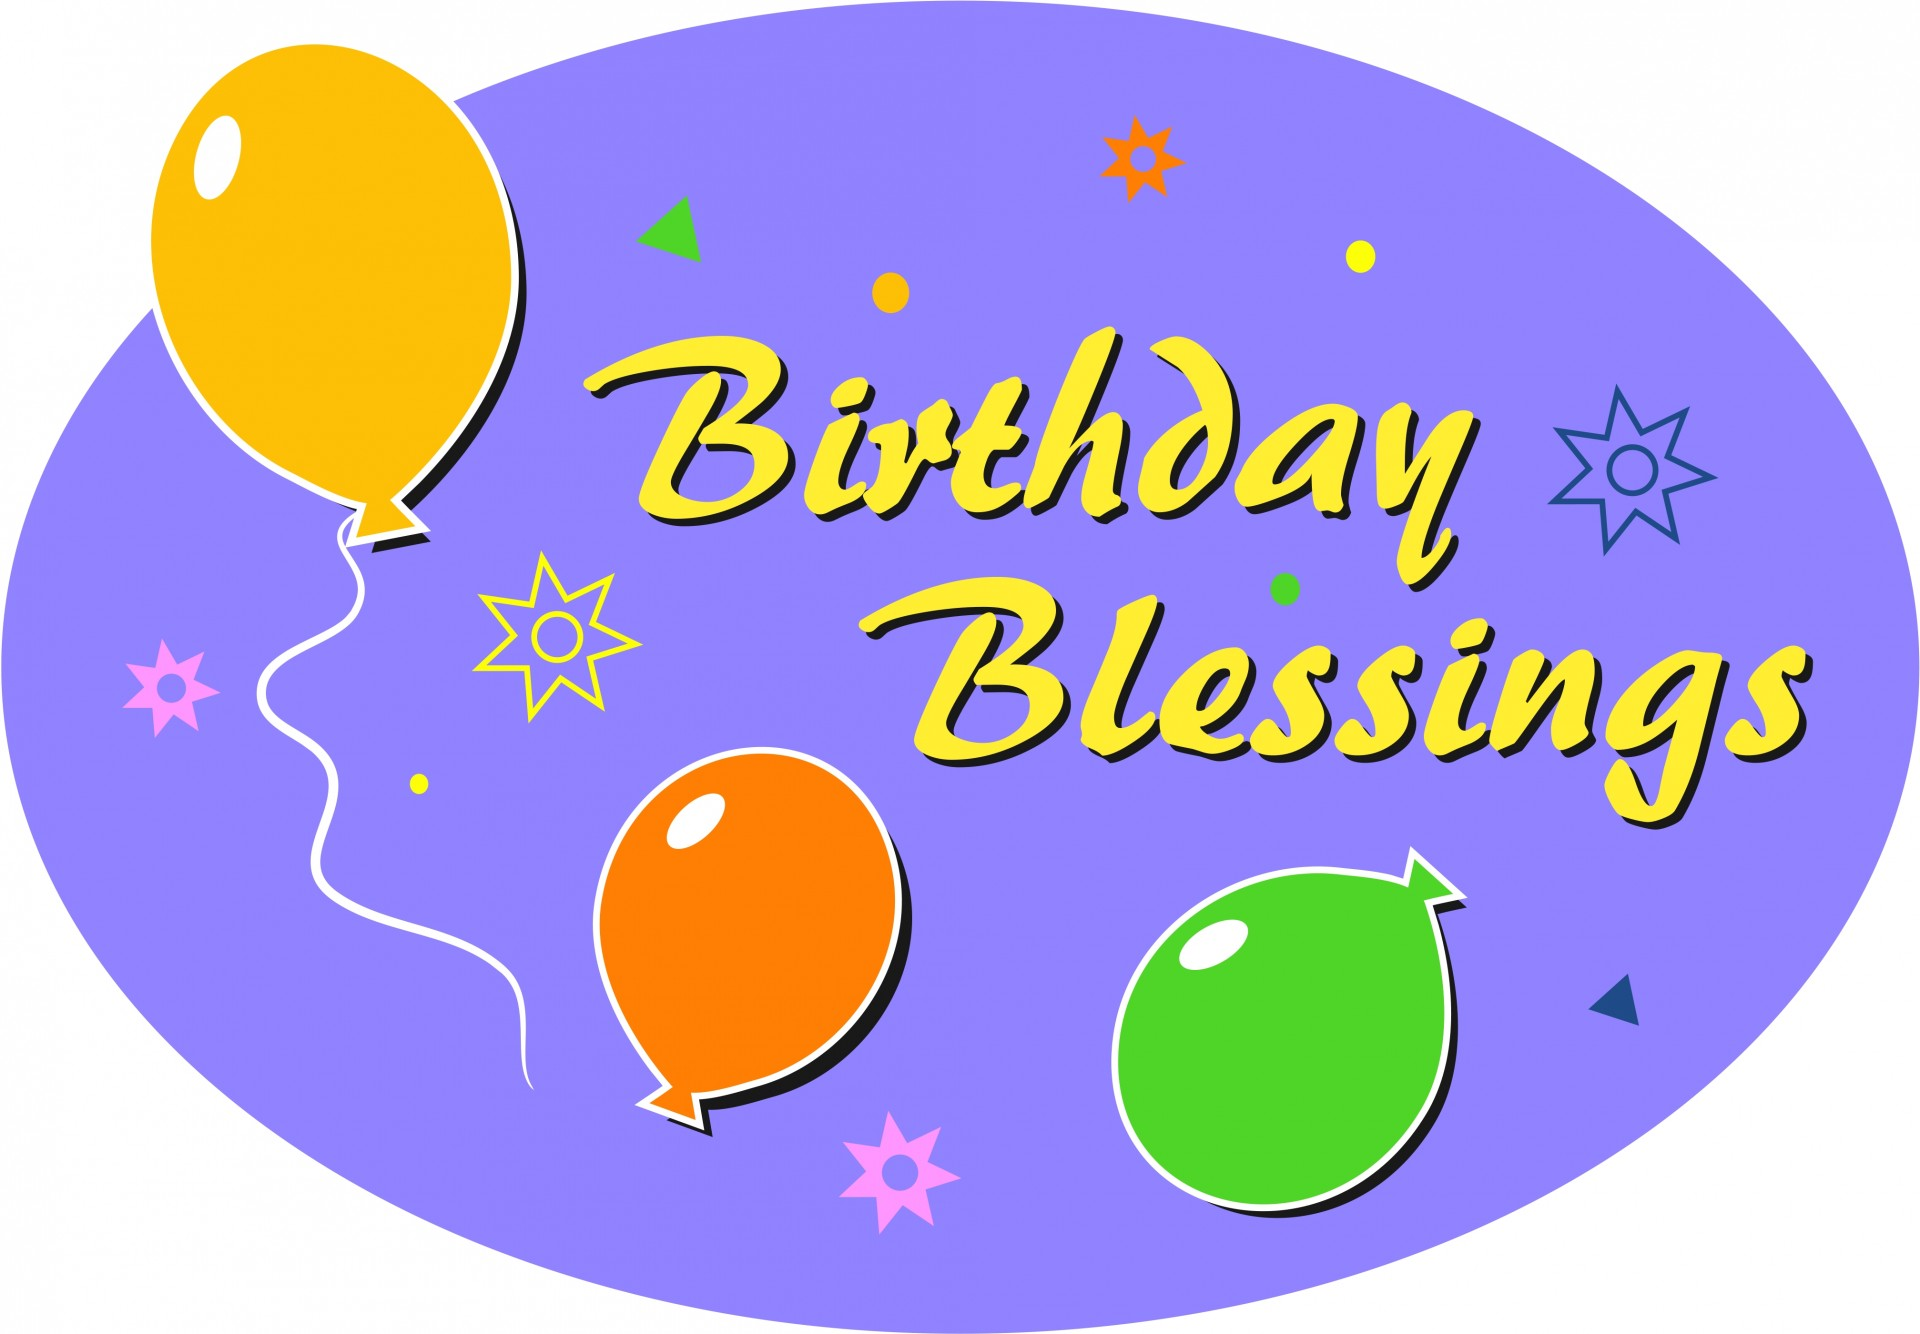 Holydays clipart blessed Clip Photo Stock Public Blessings